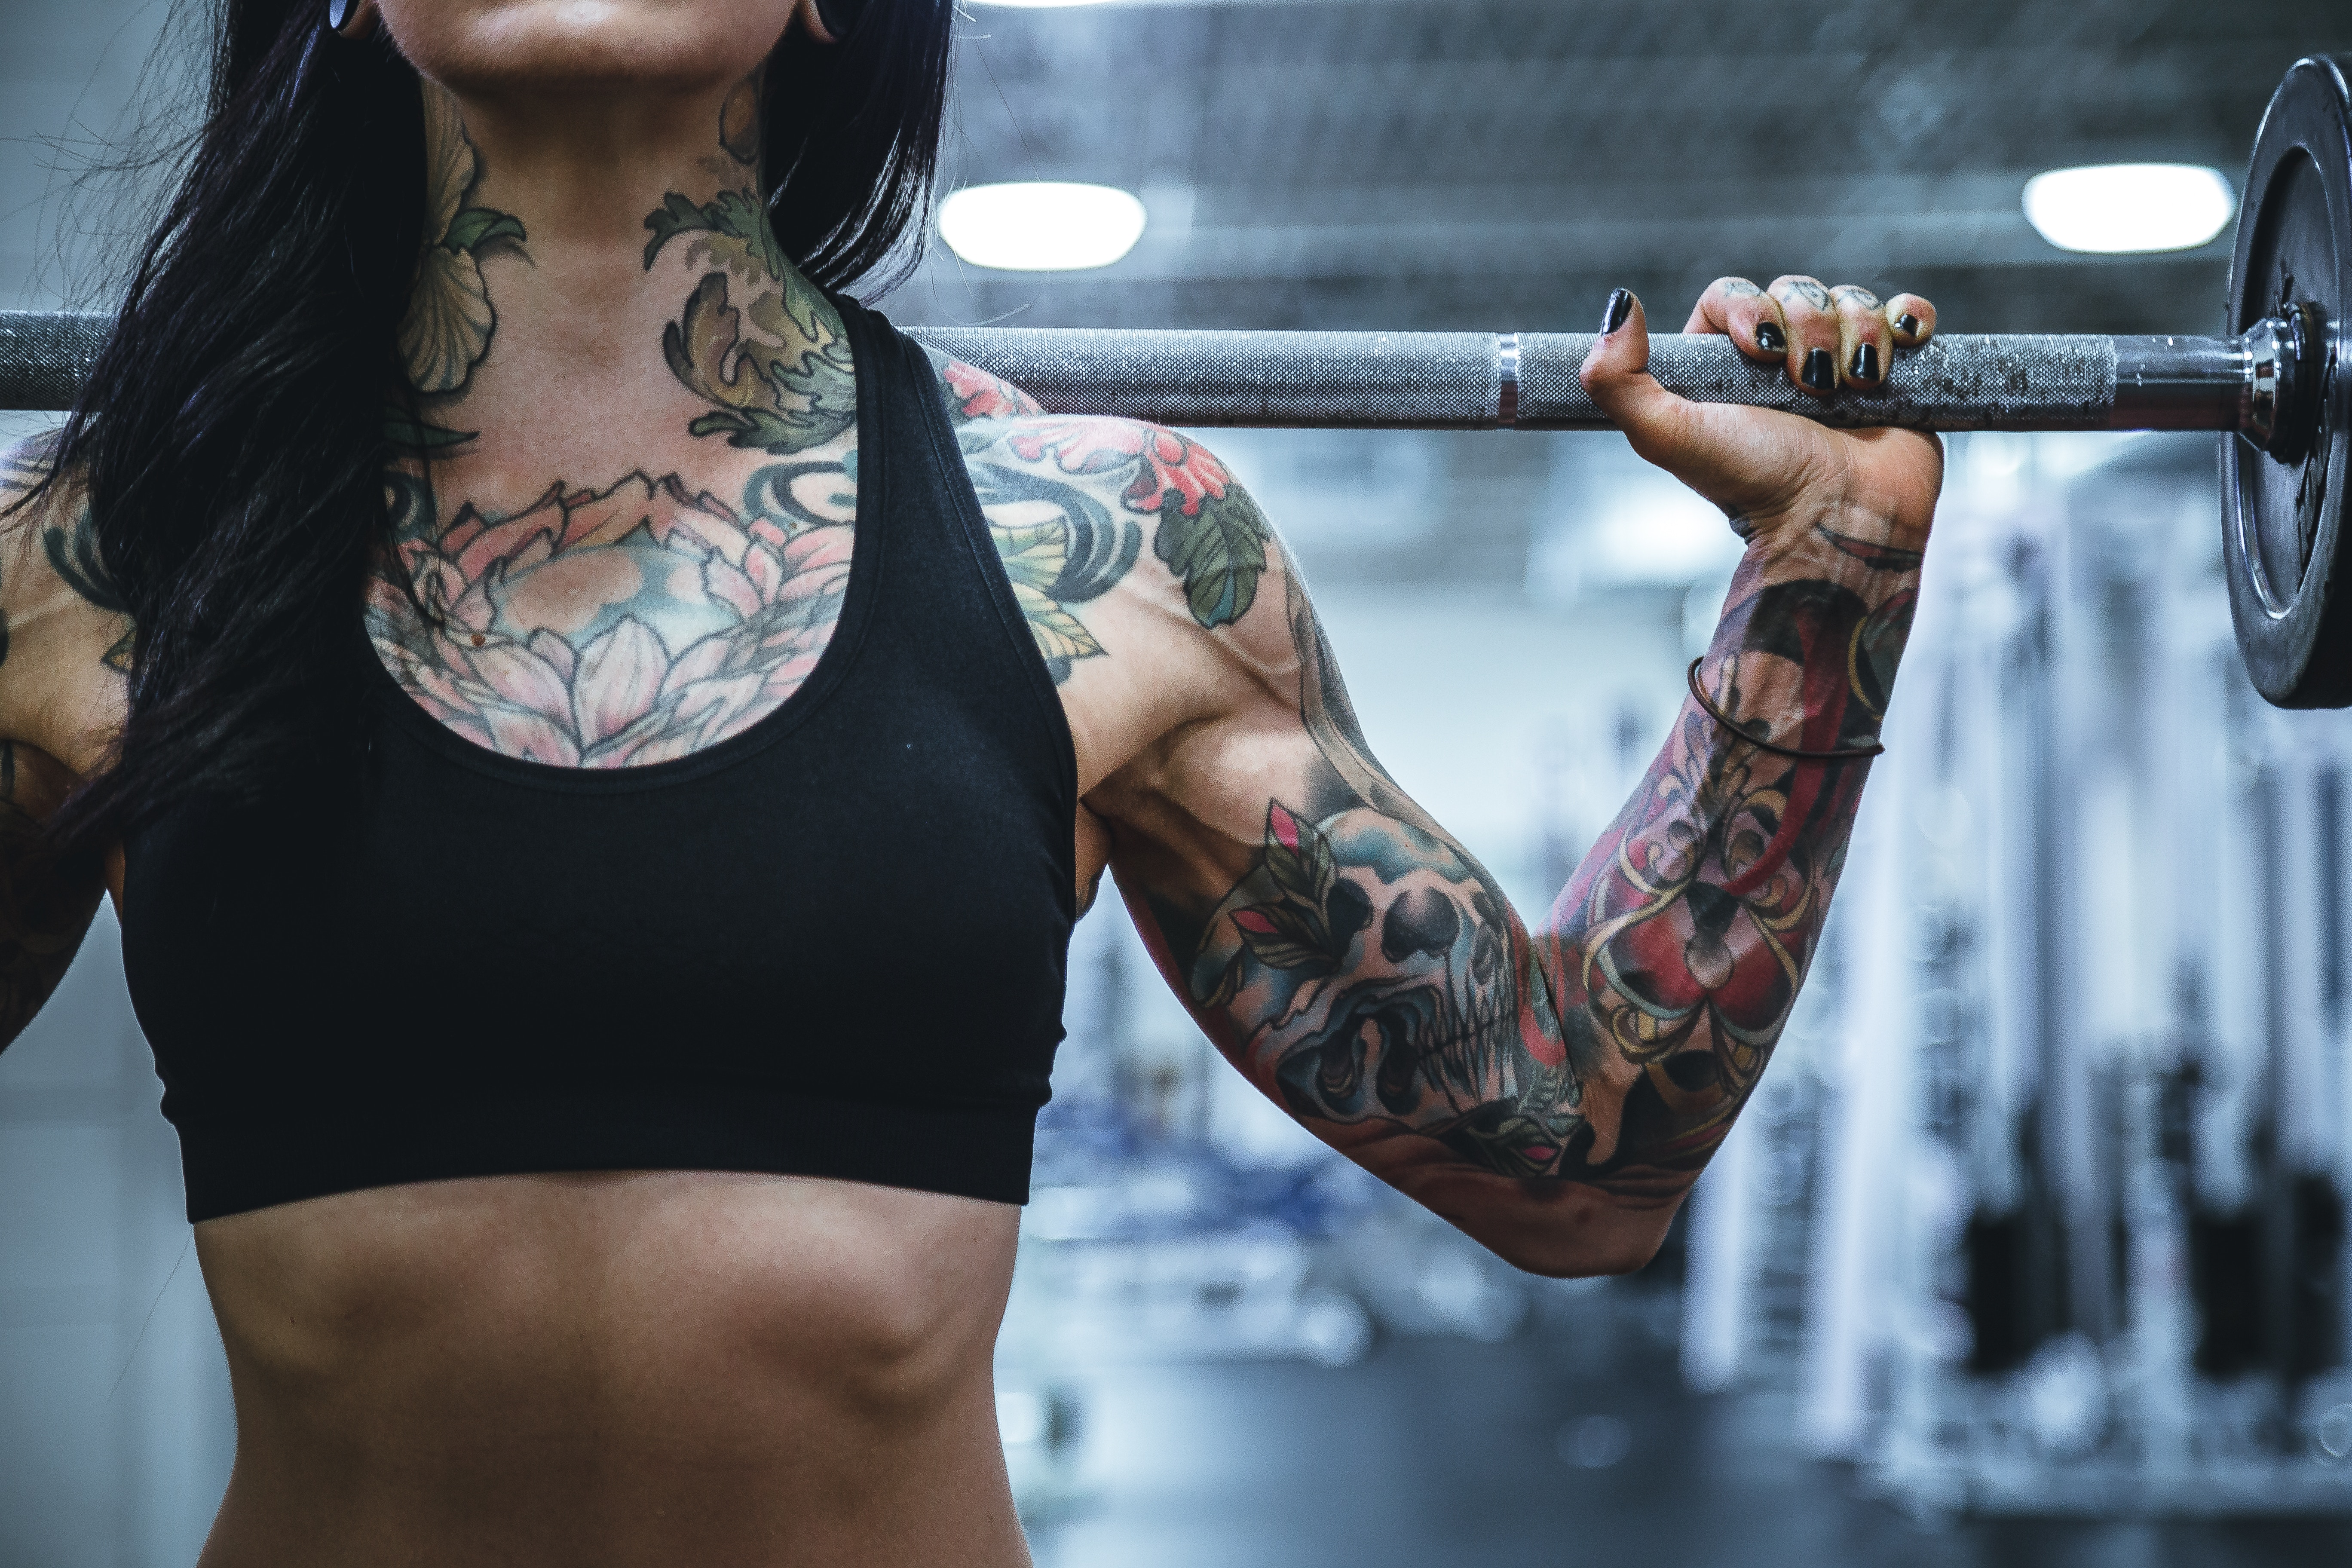 Your Pre Workout Supplements Might Contain Some Shady Ingredients